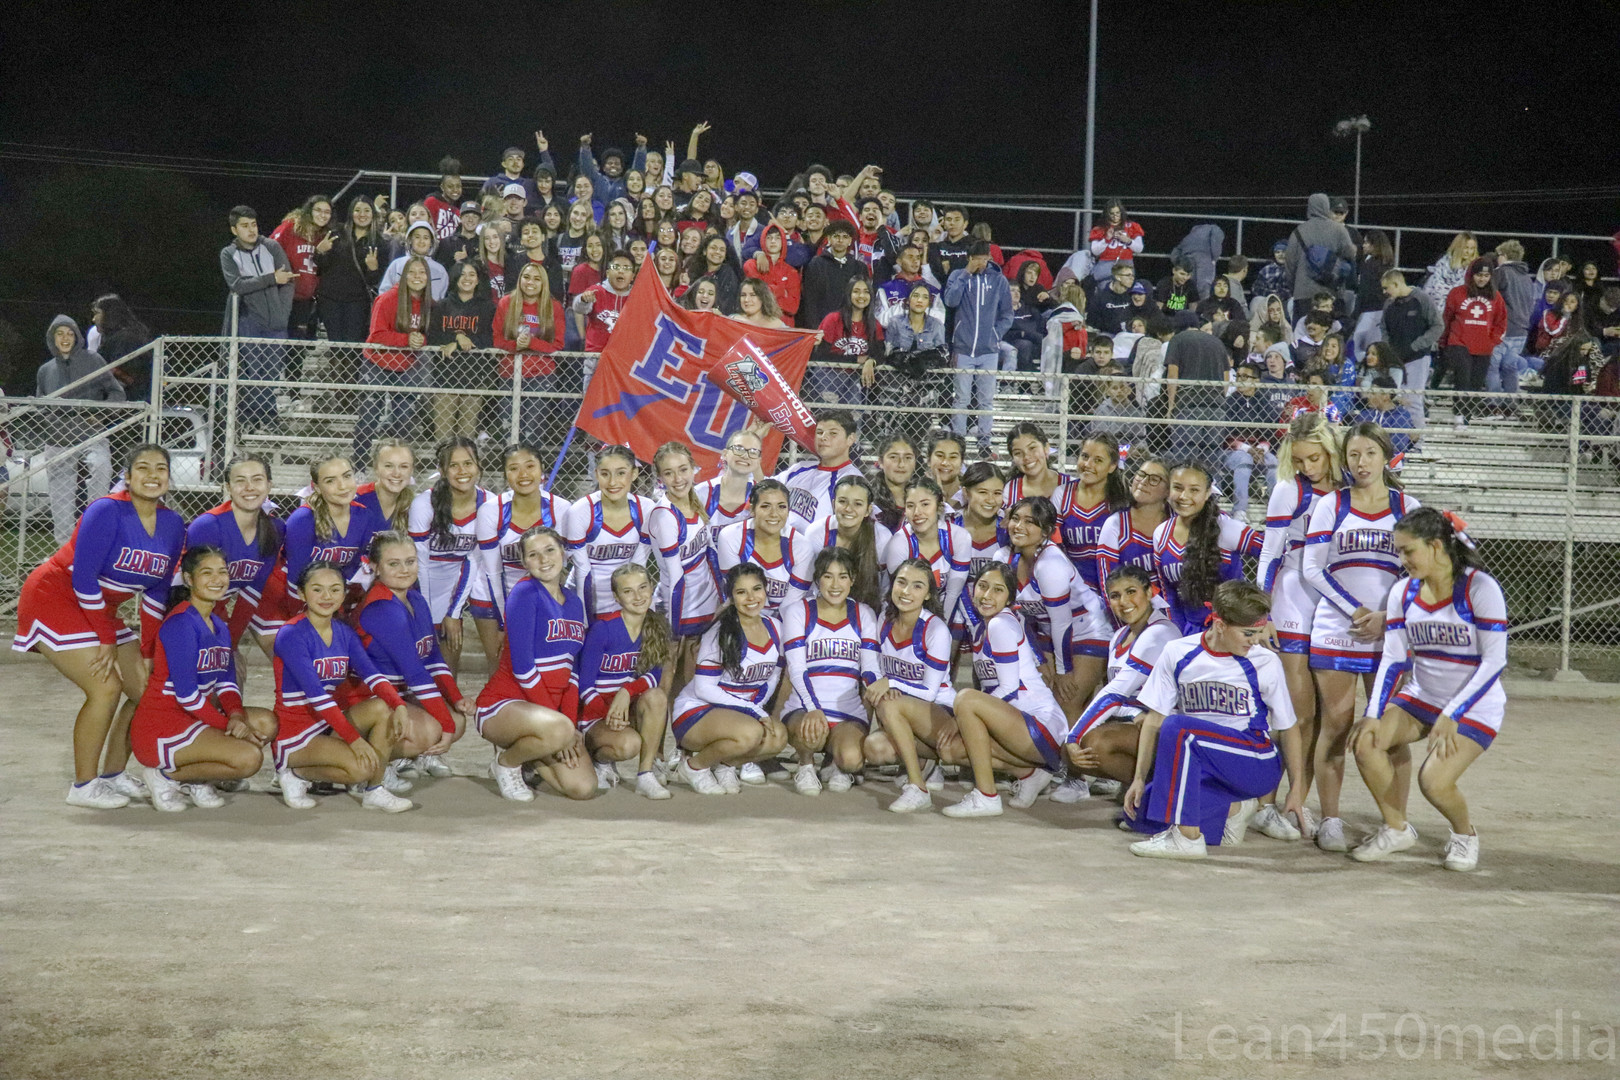 EU Vs. Manteca [Cheer]-51.JPG